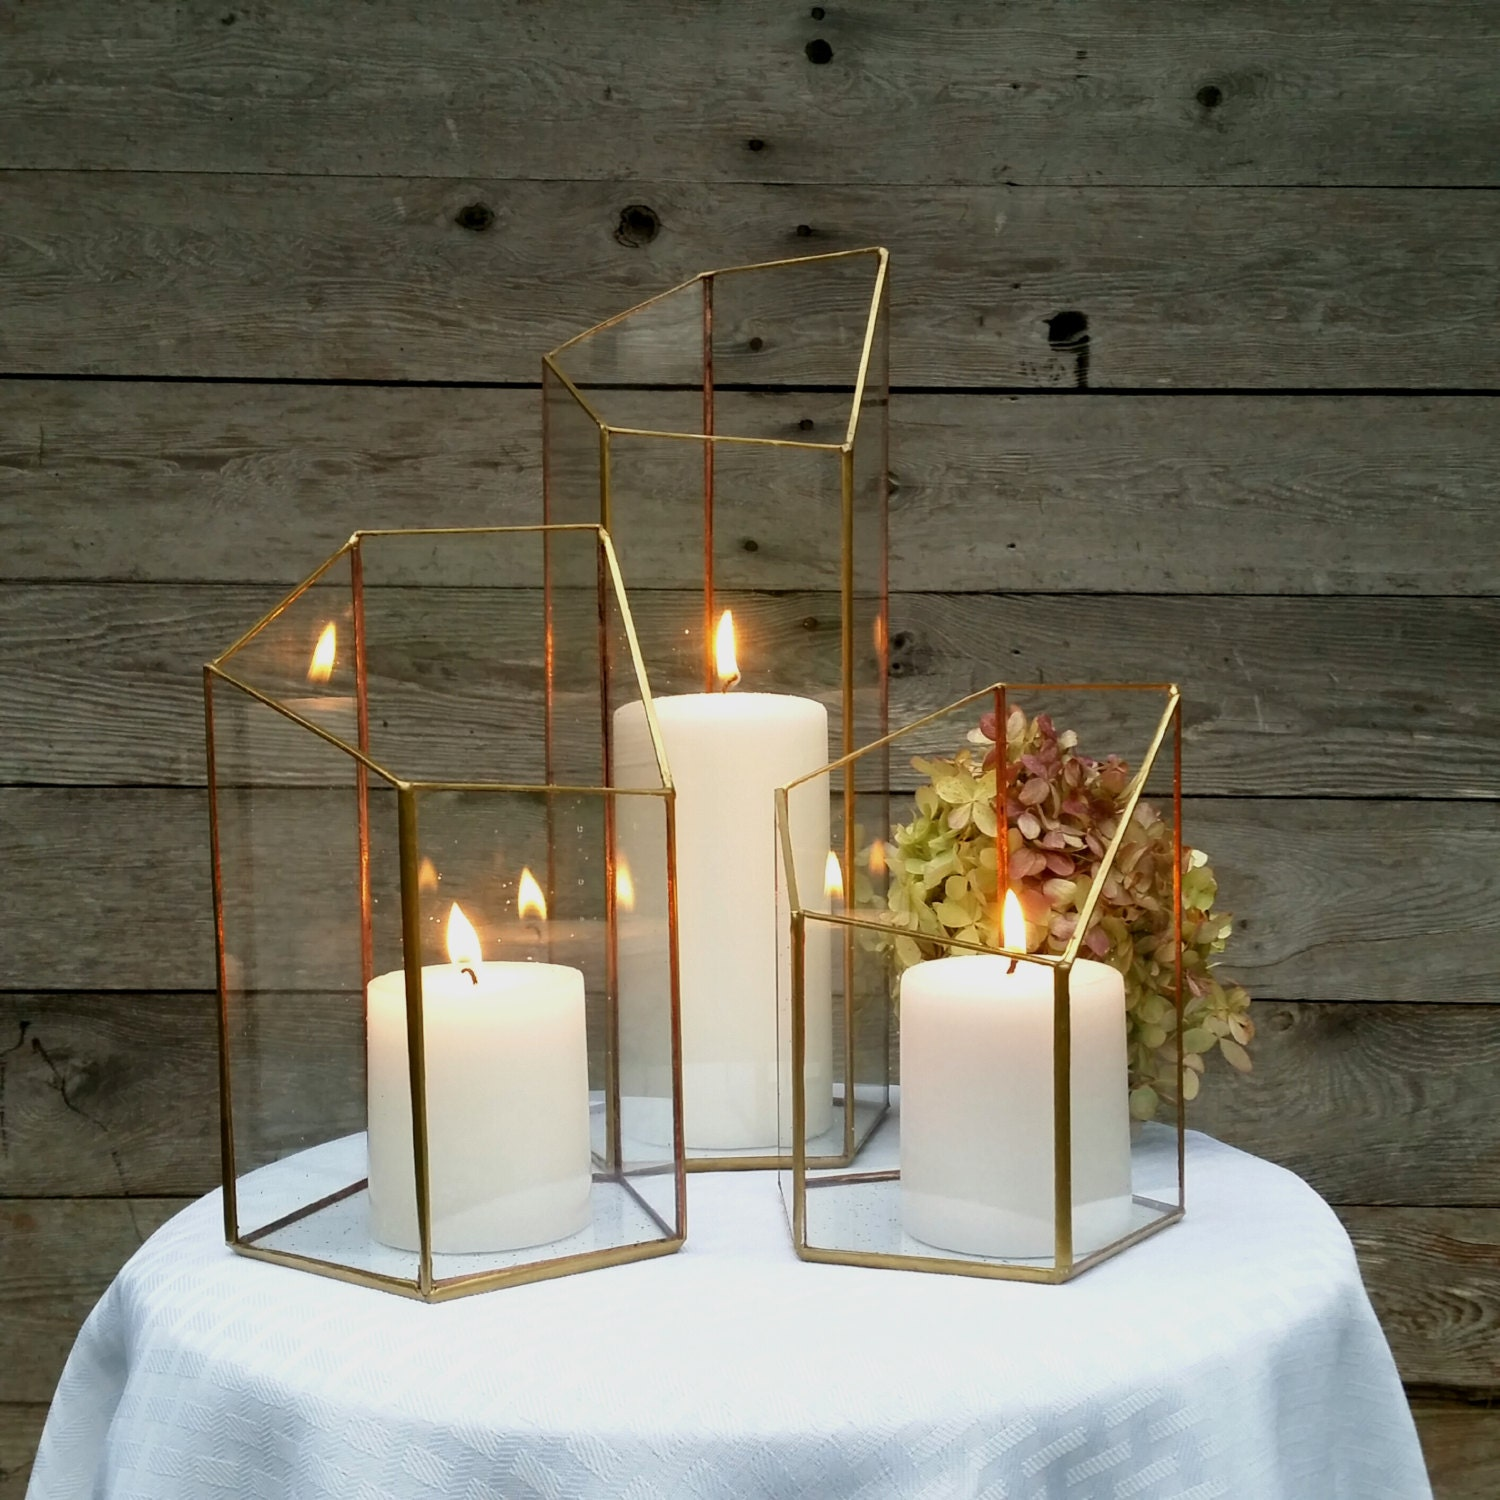 Candle holder lighting wedding centerpiece by lonesomehobo